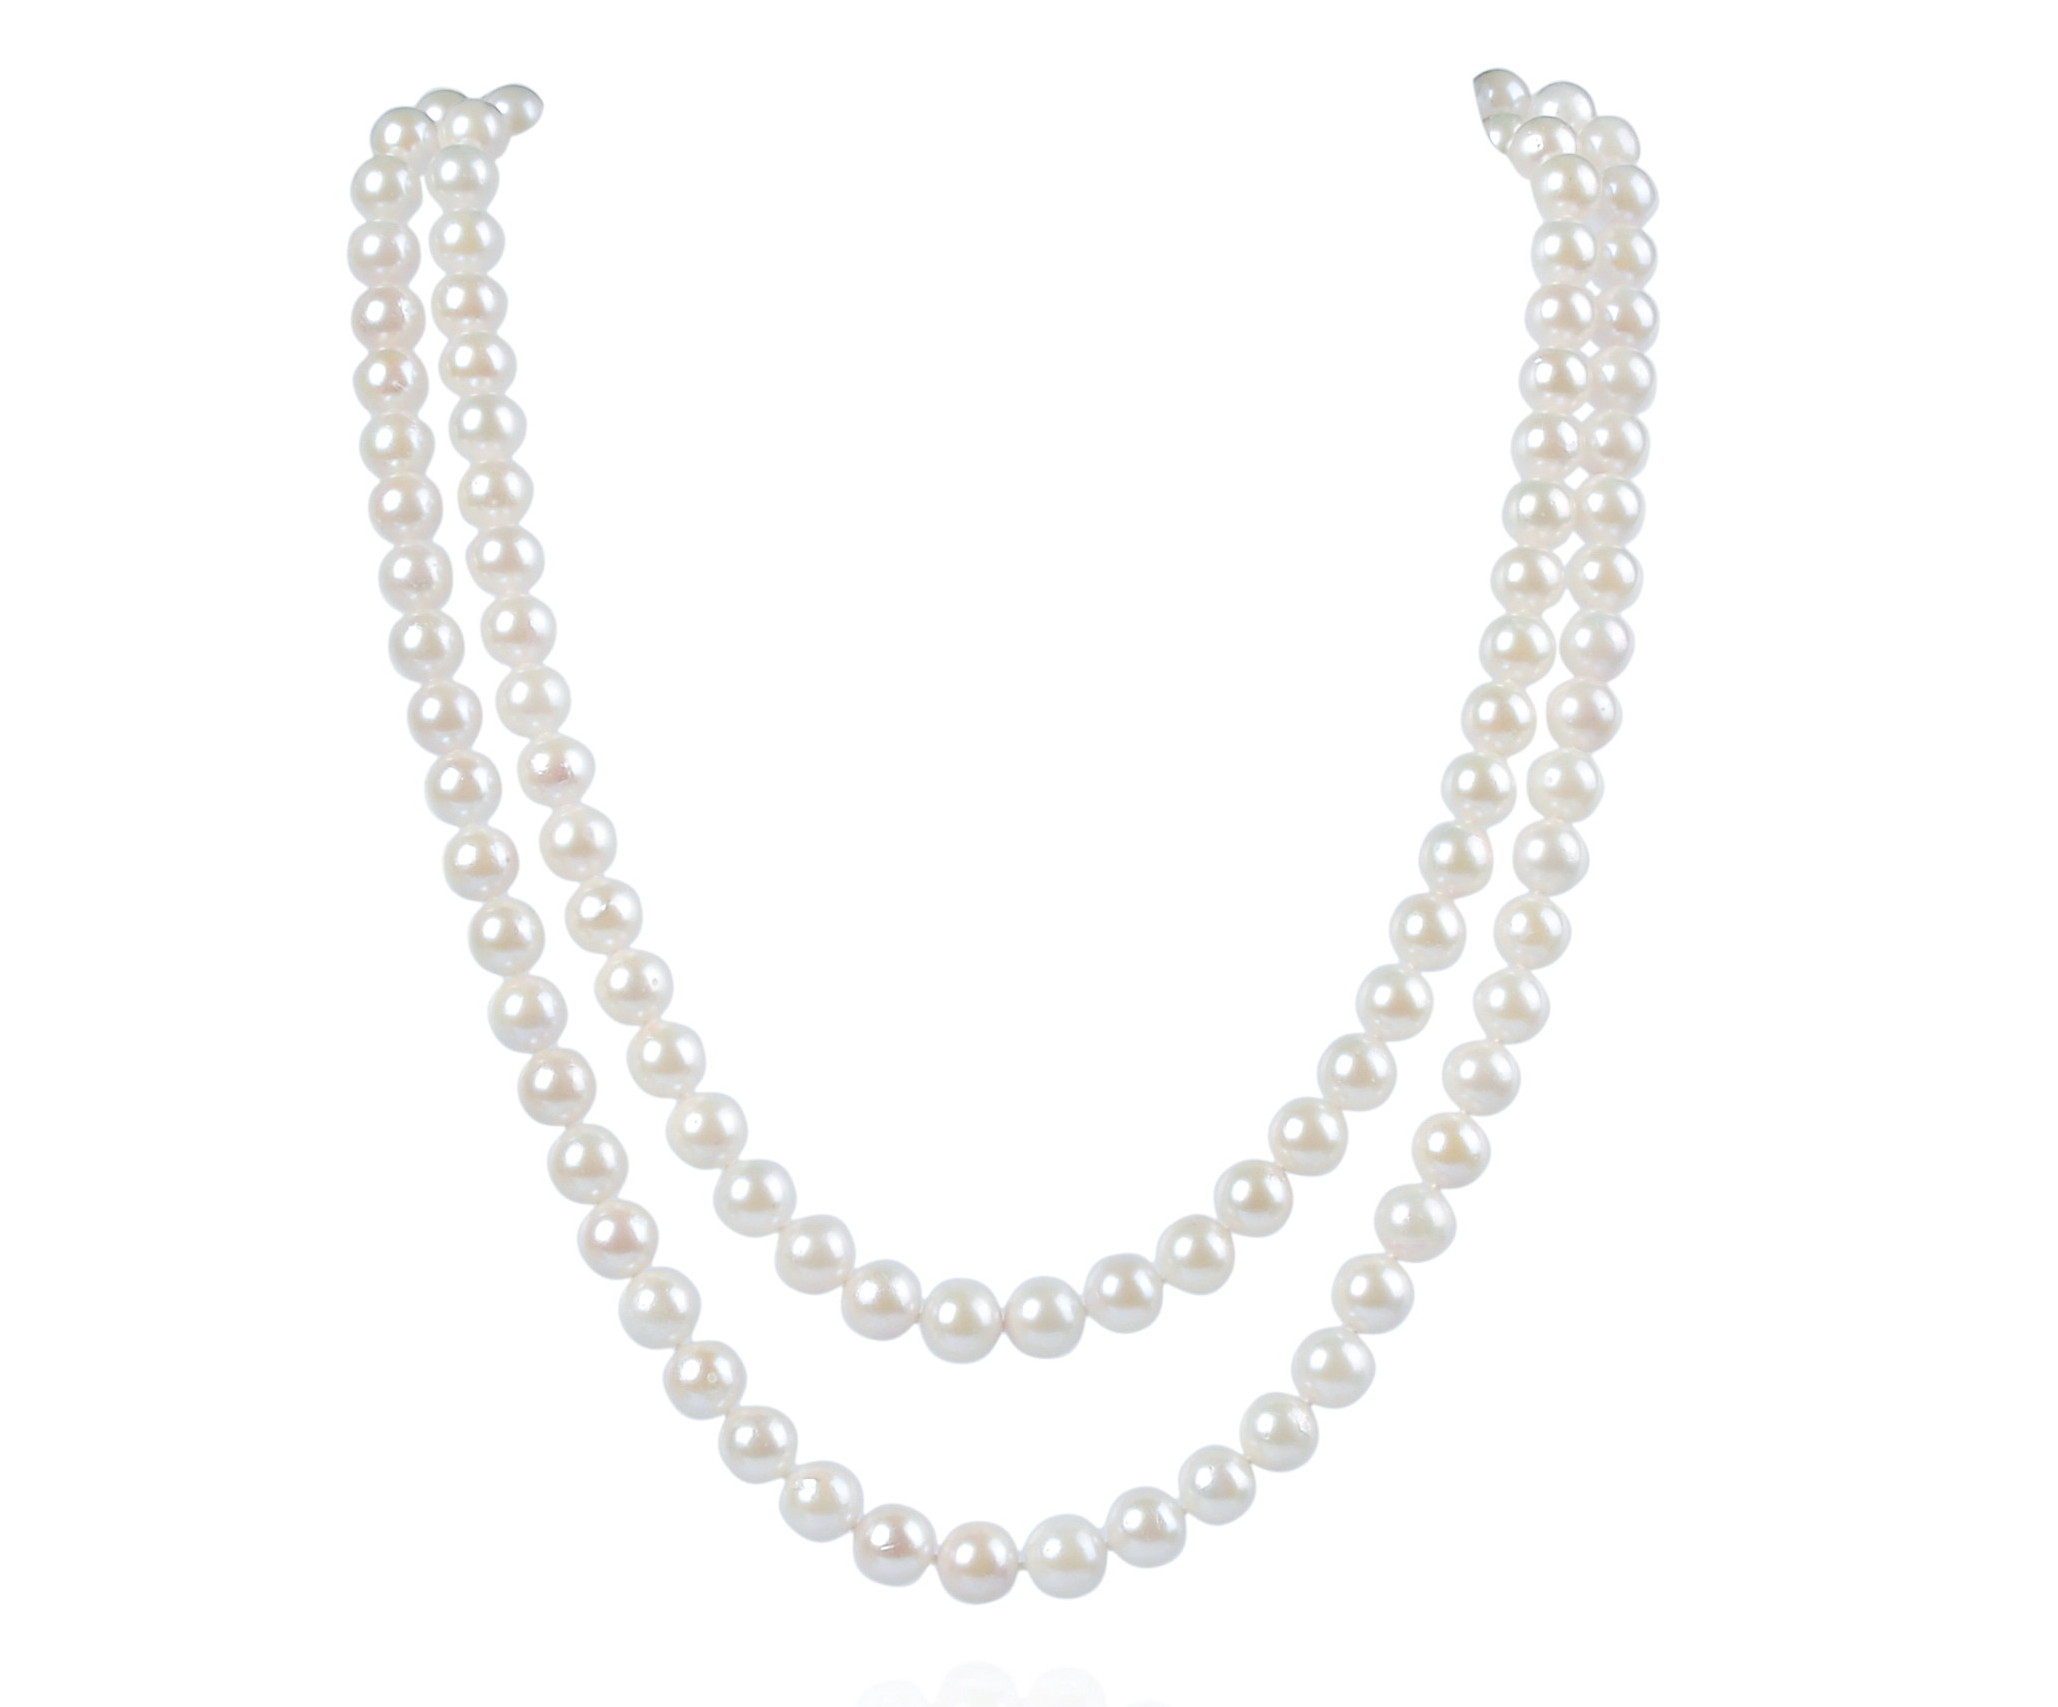 7.5mm Two Strand AAA- White Cultured Akoya Pearl Necklace -nk122